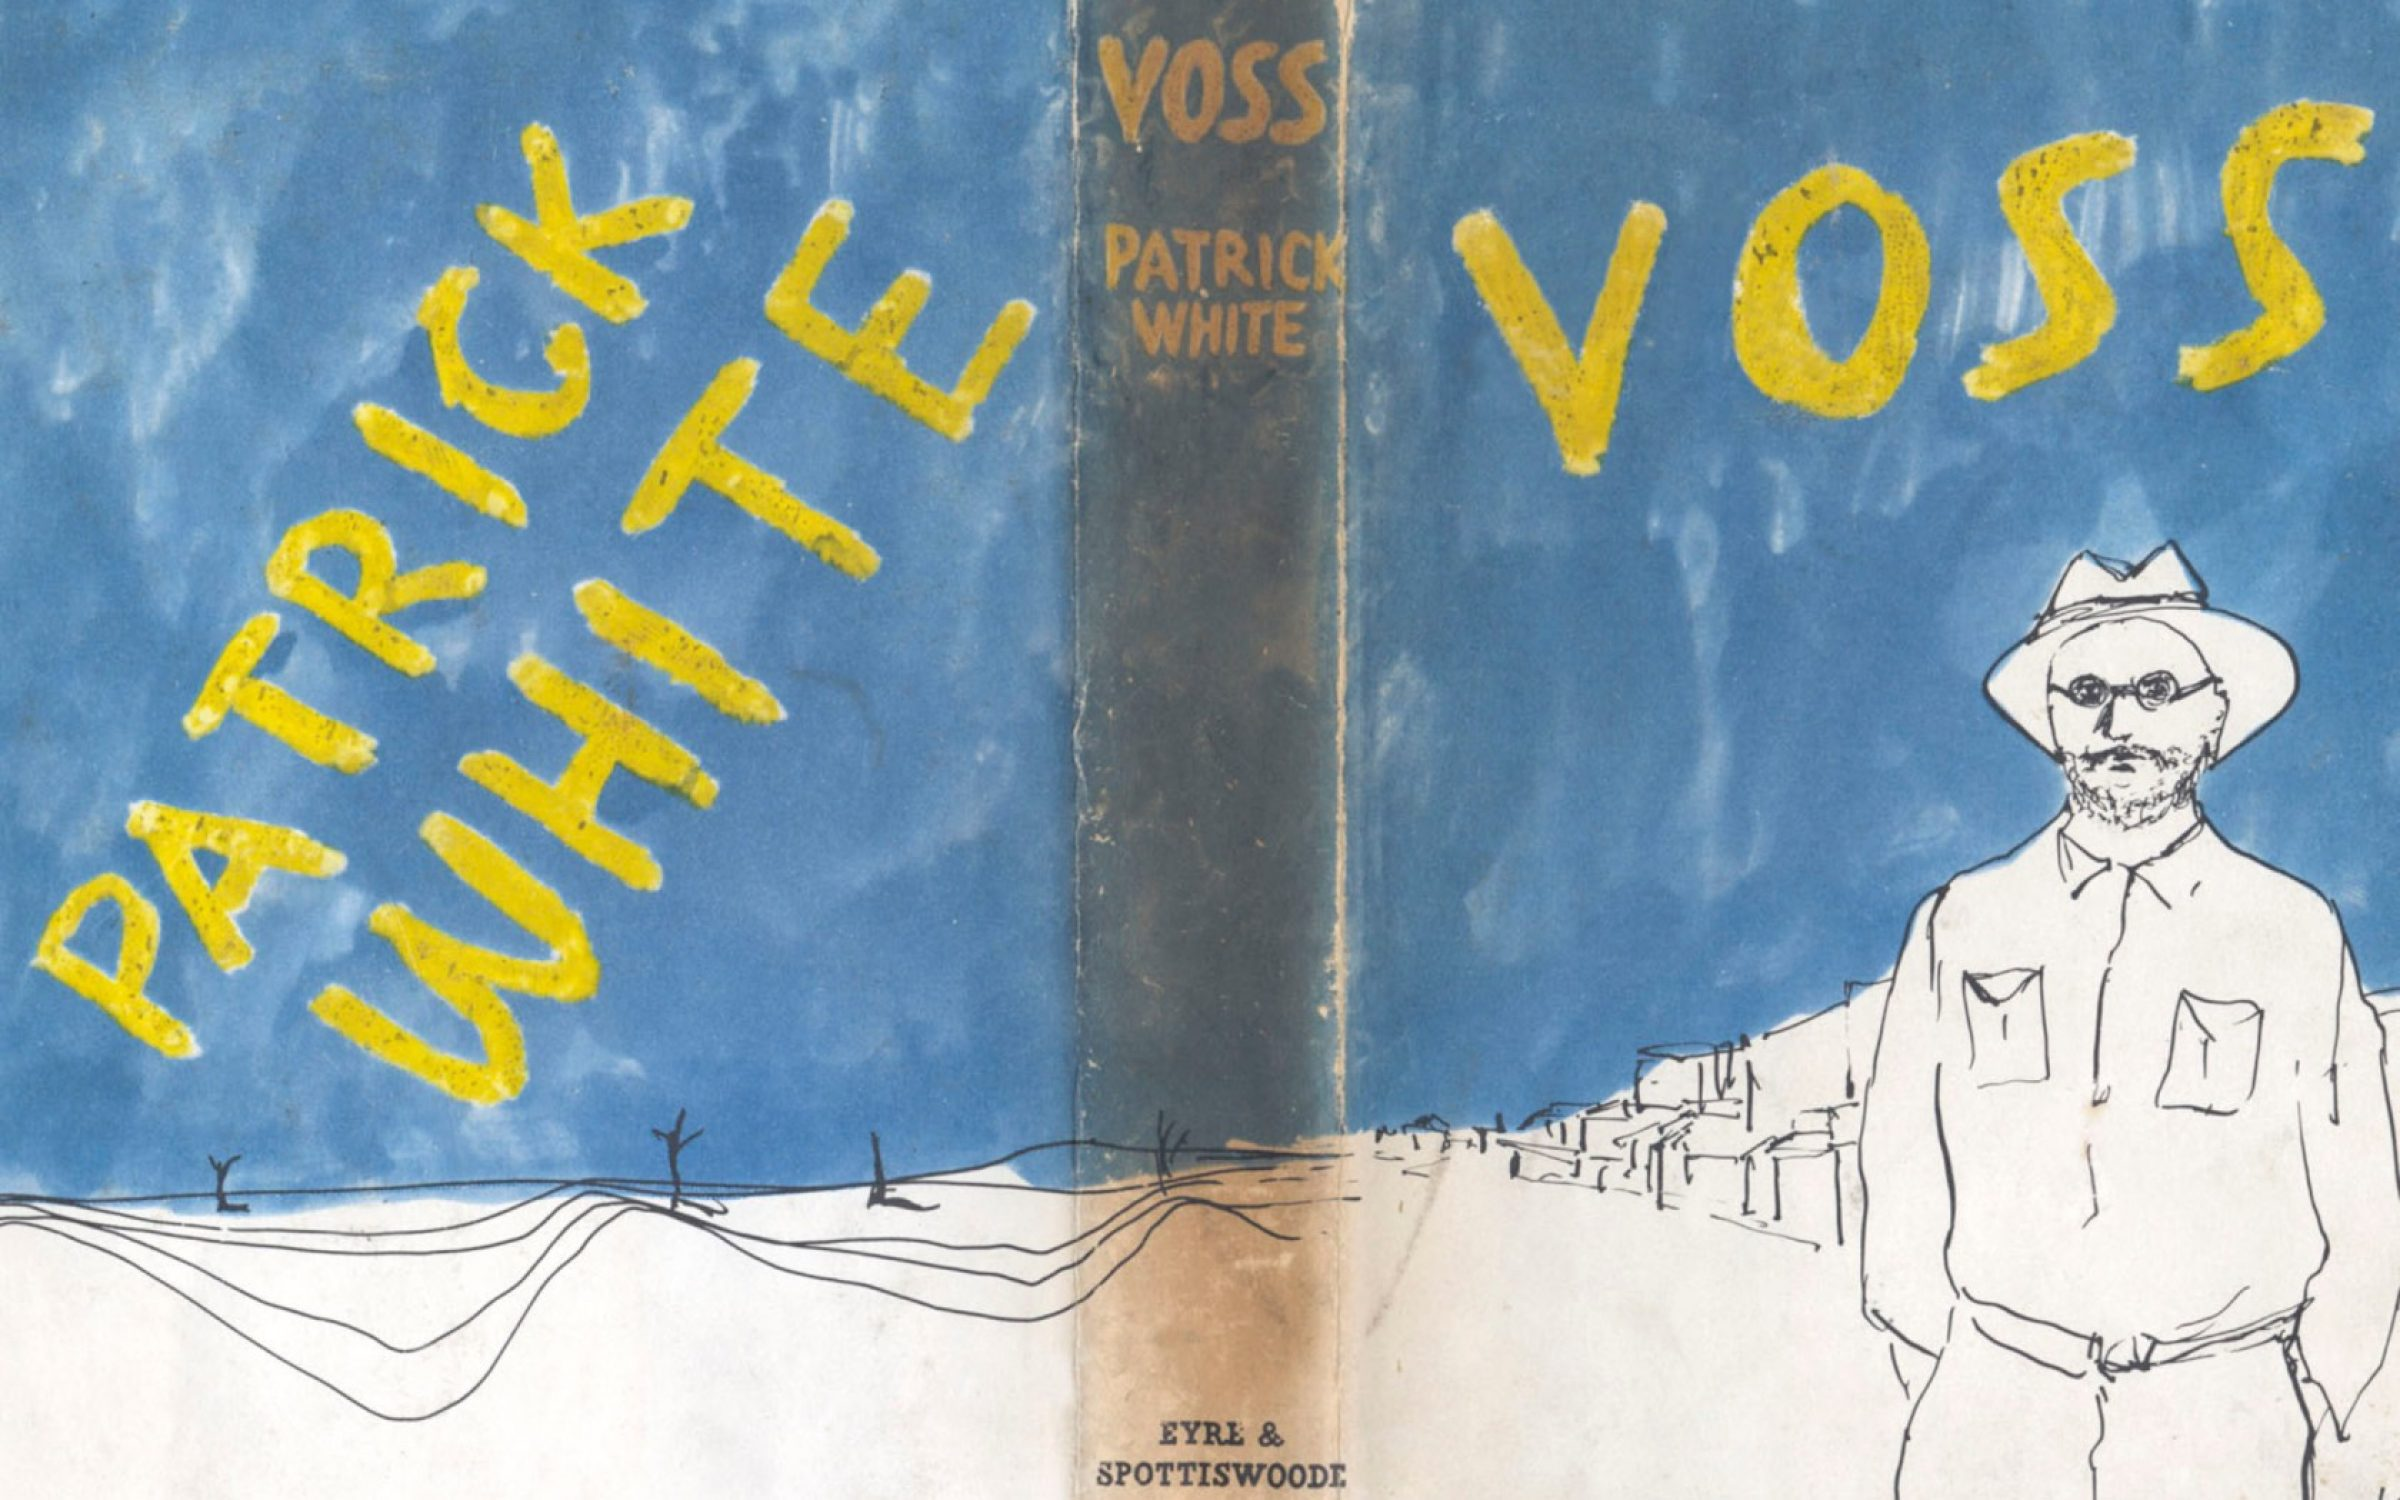 Voss was Patrick White's magnum opus. Credit: Culture Club / Getty Images.